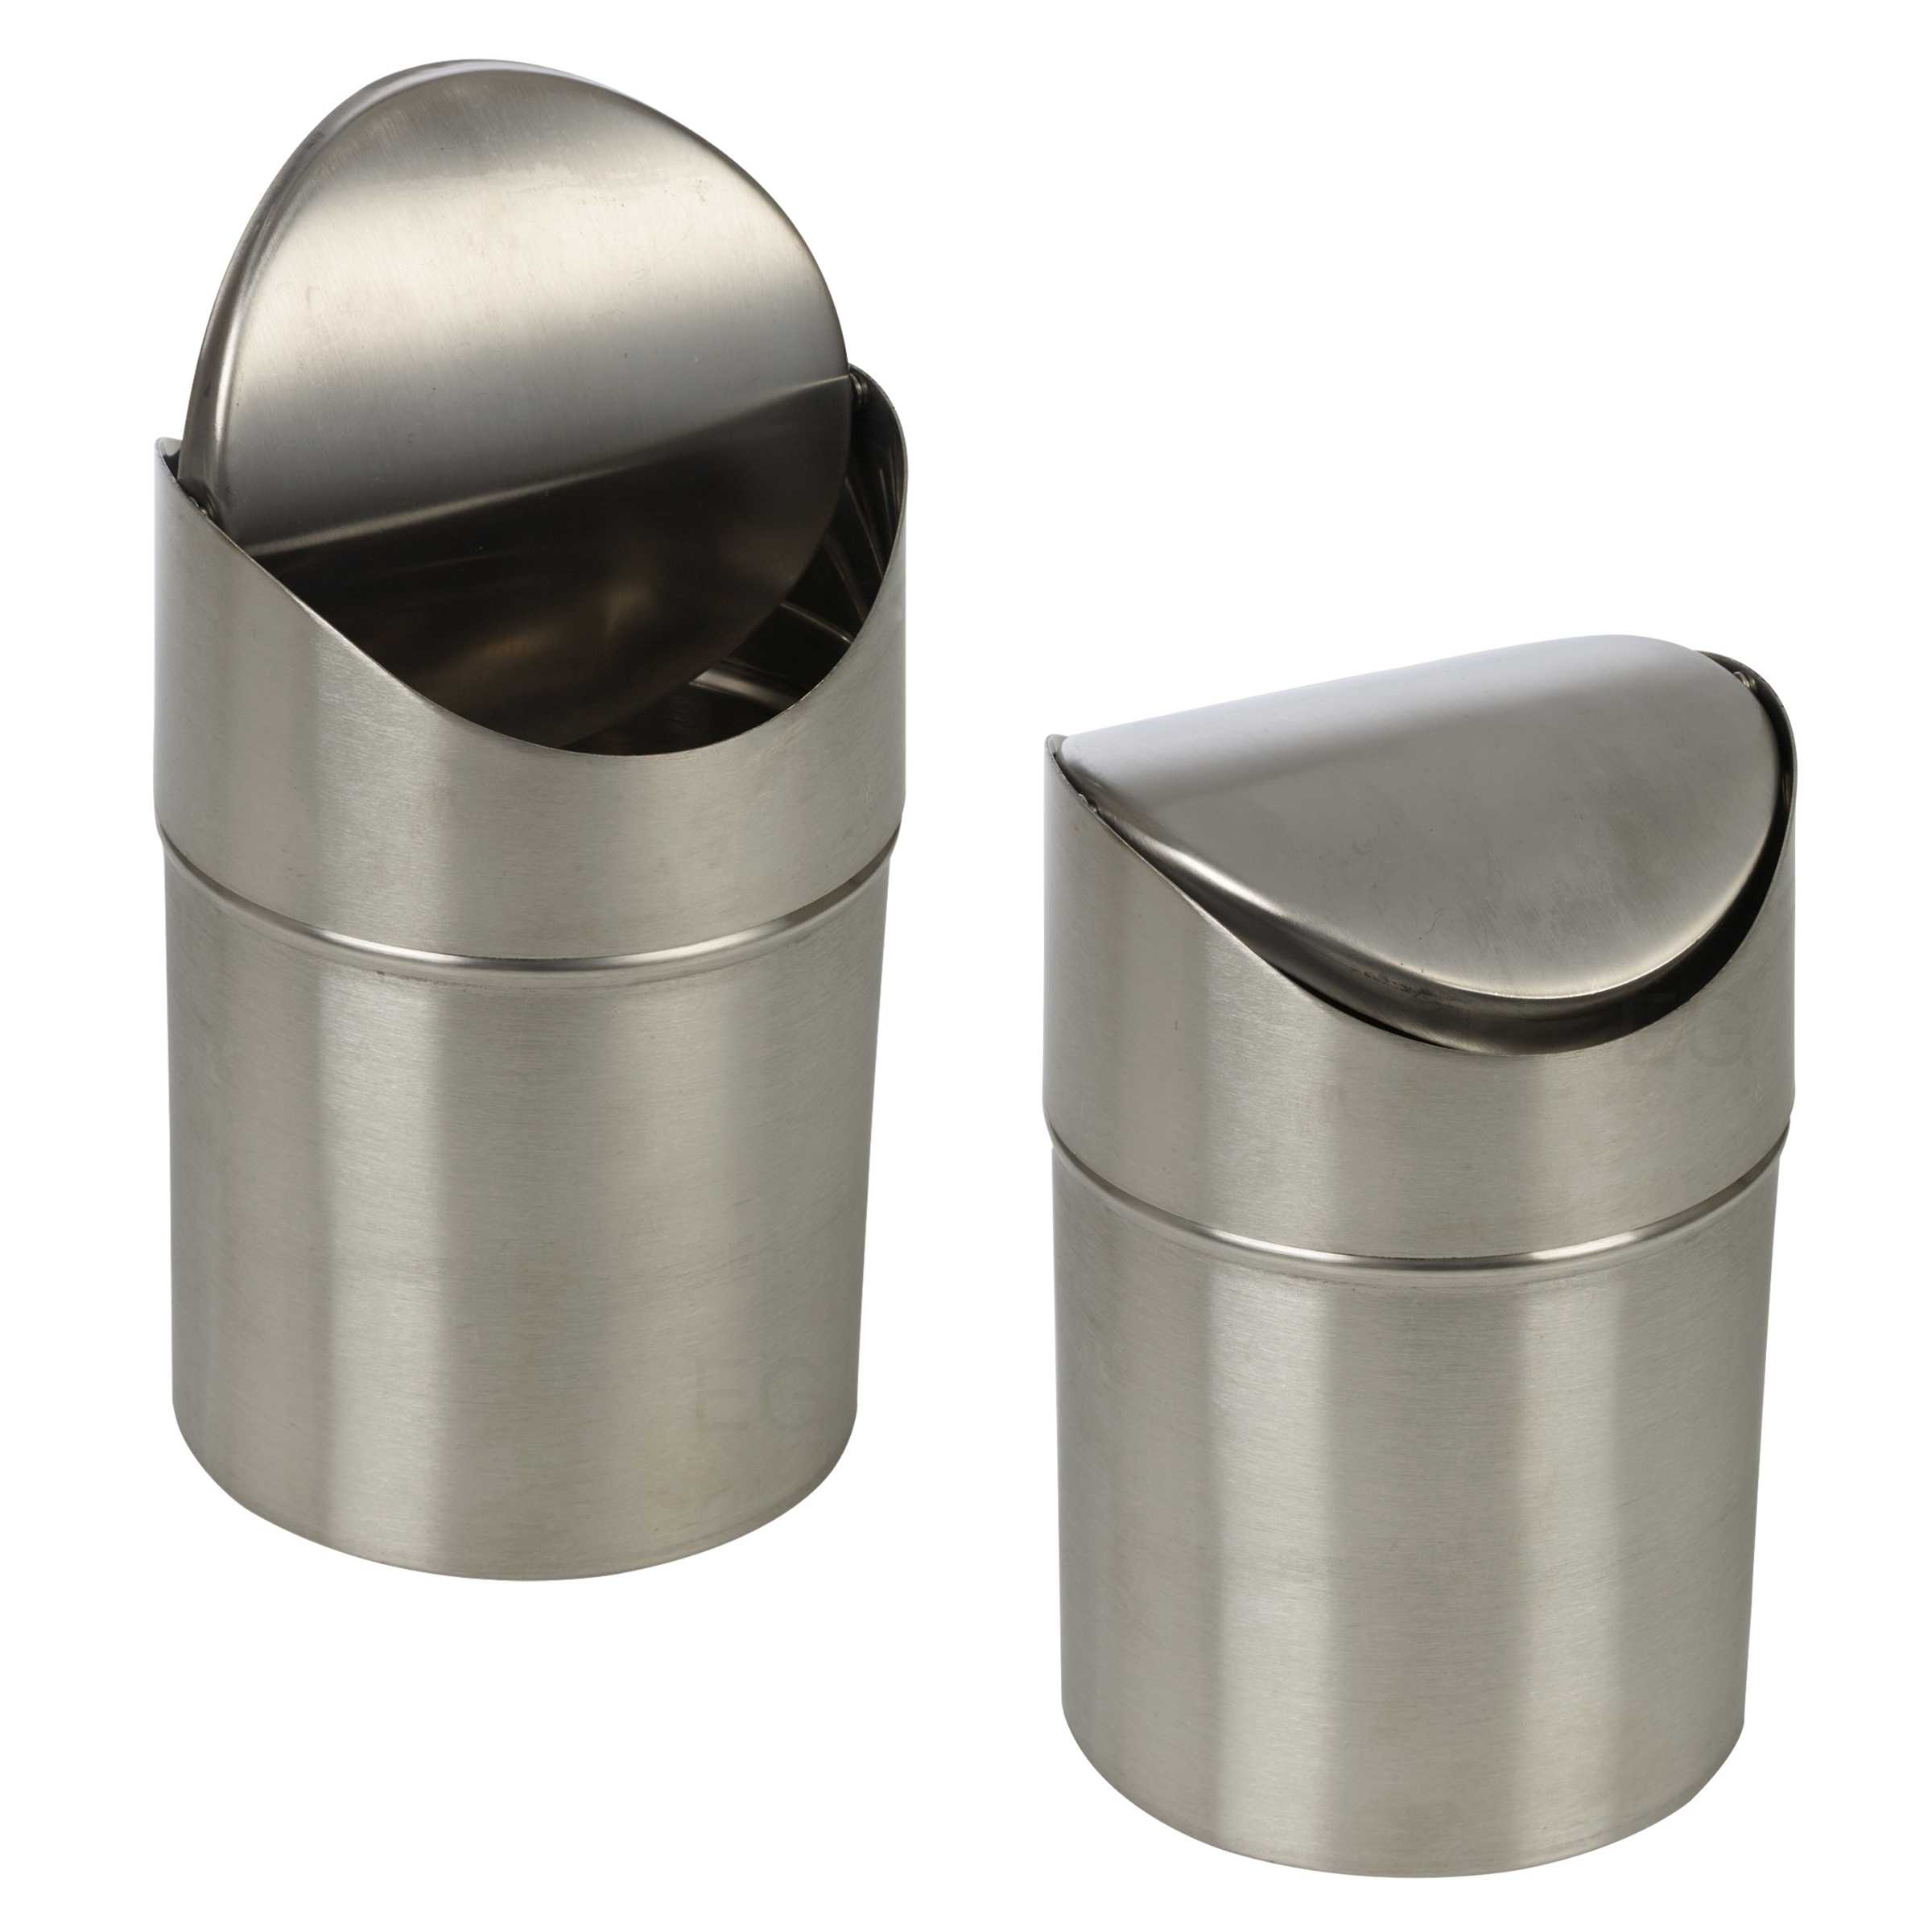 Stainless Steel 1 5l Small Recycling Bin Swing Lid Kitchen Waste